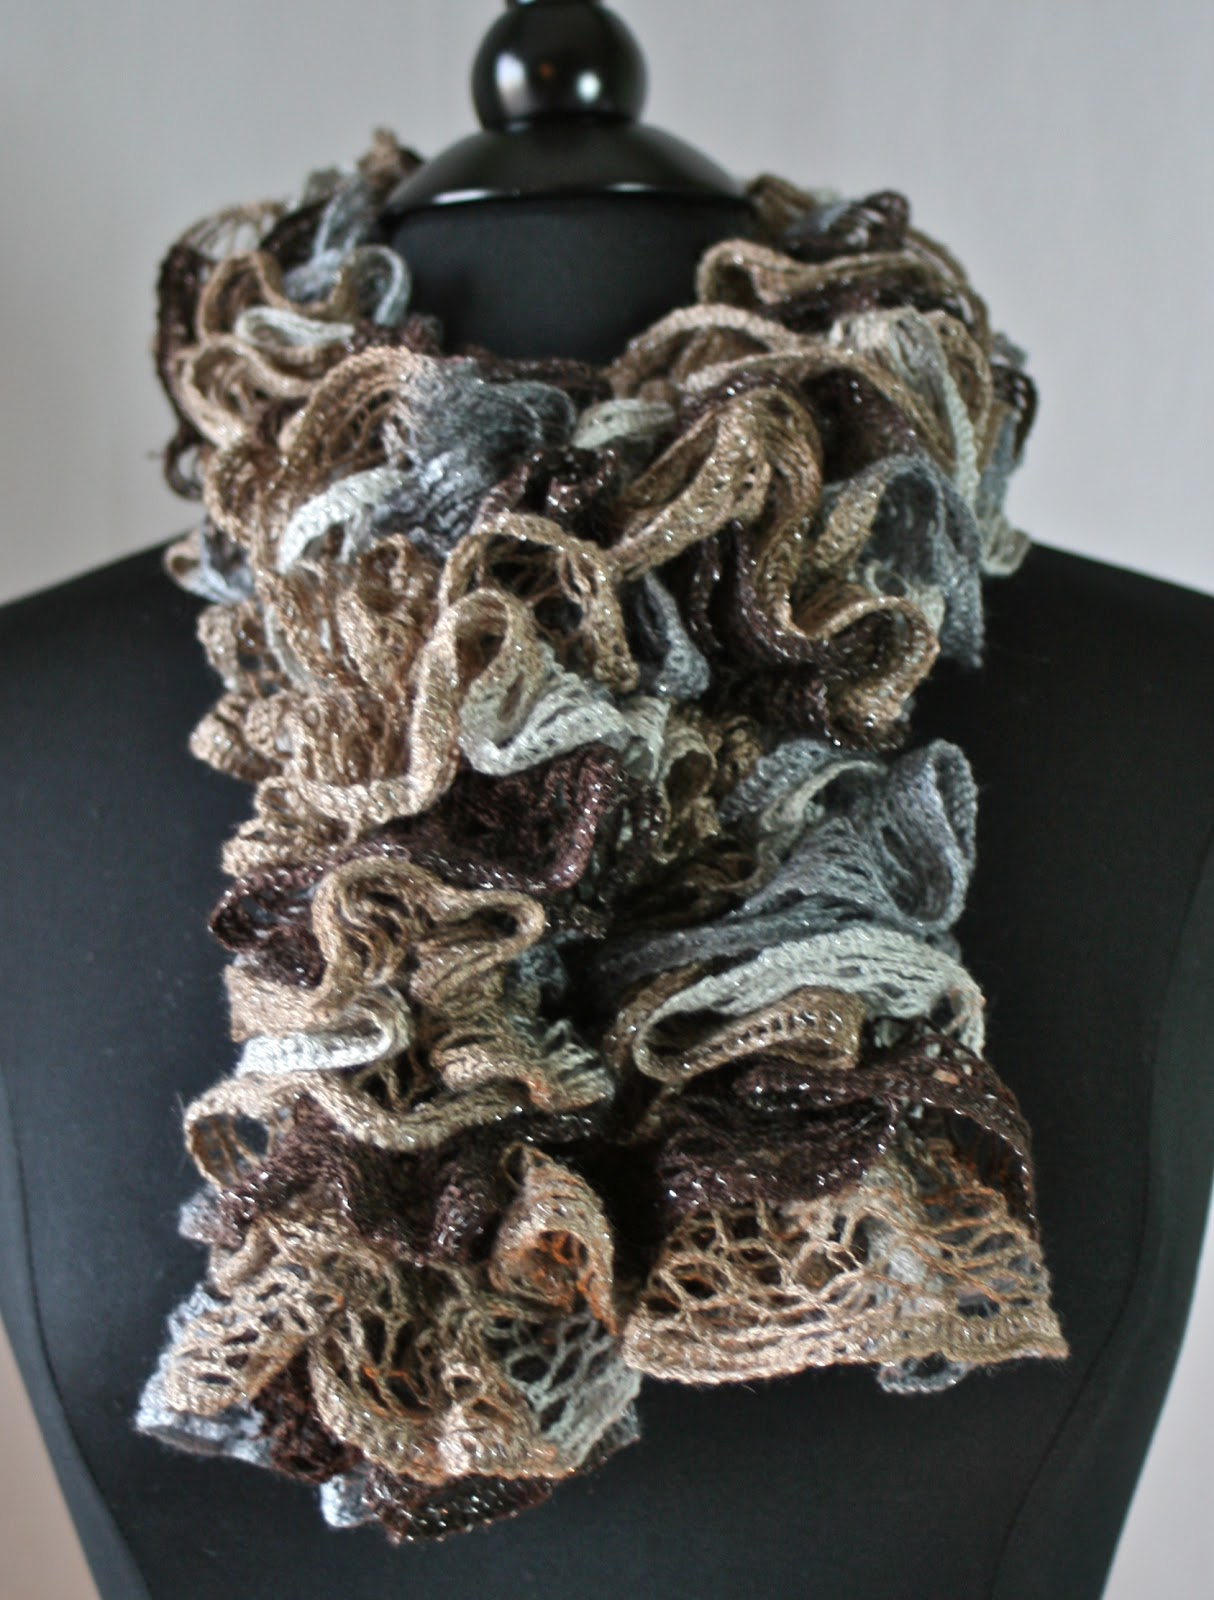 Crochet Scarf Pattern With Sashay Yarn : Knots-n-Knits: Crocheted Ruffled Scarves - Sashay vs ...